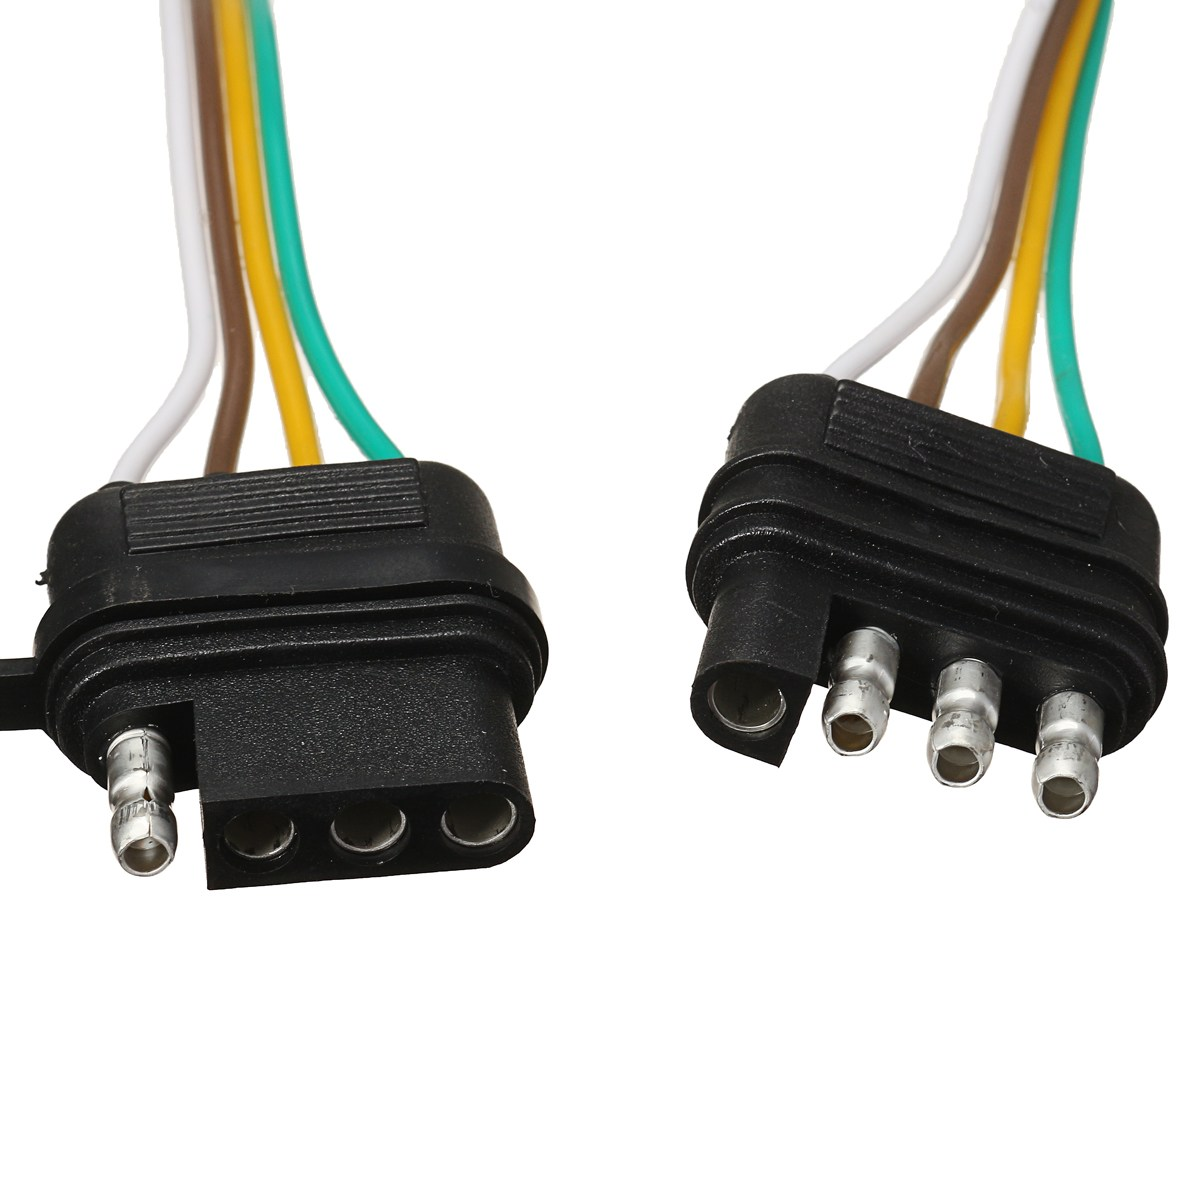 Wire Harness Split Wiring Library A 4 Prong Trailer Kroak 2 Way Pin Splitter Y Adapter For Led Tailgate Bar